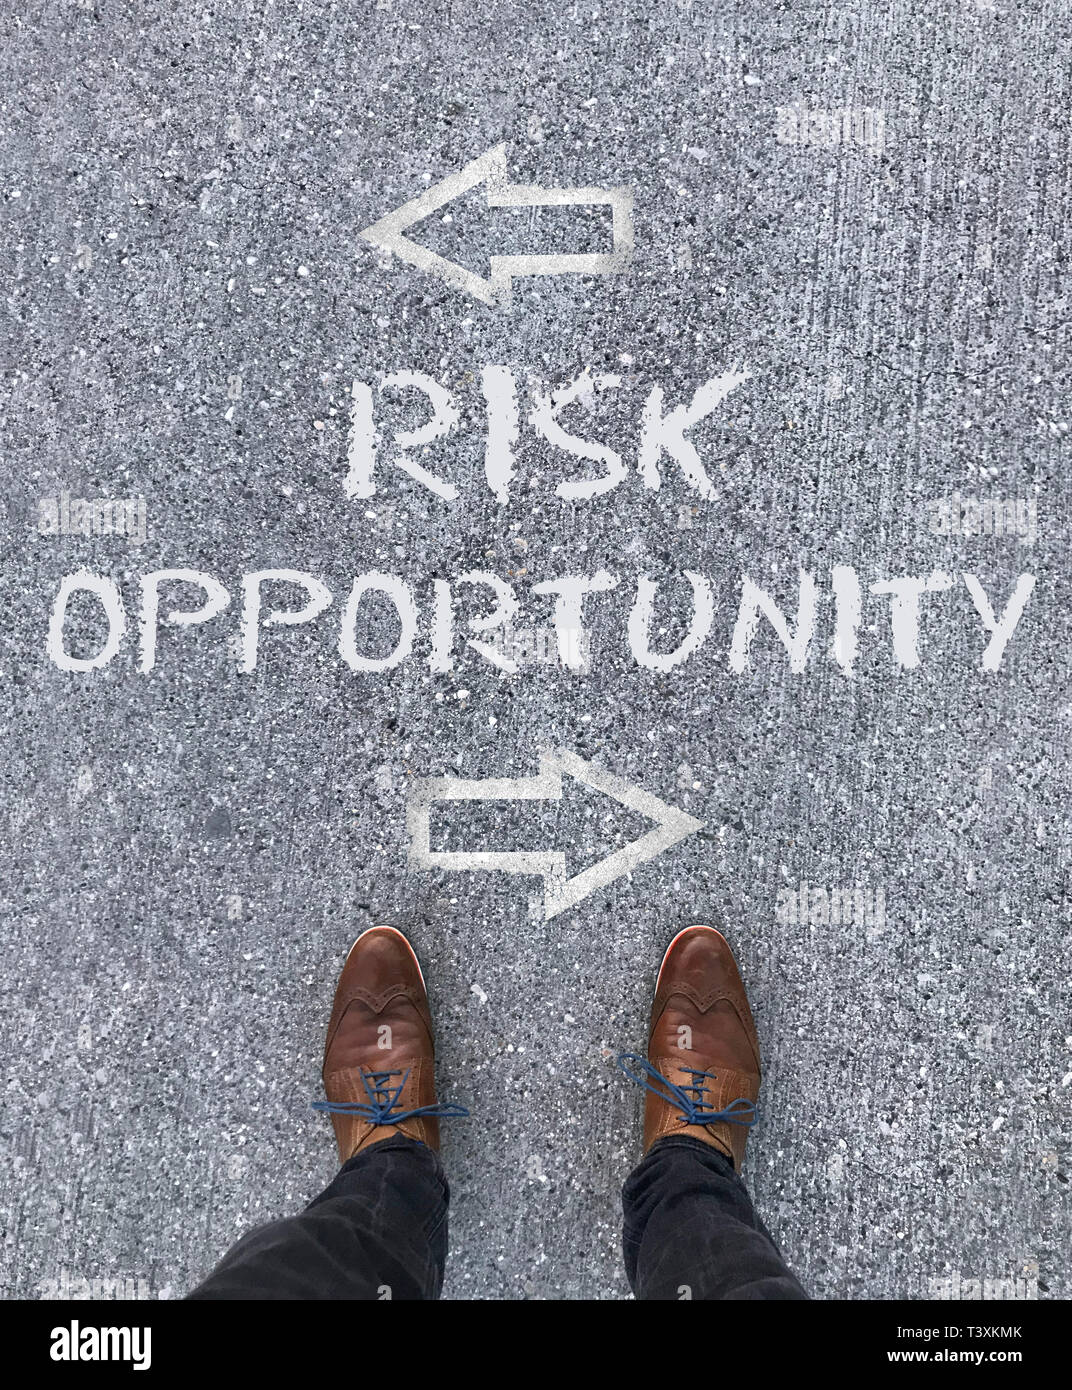 Time to decide: Opportunity or Risk - Stock Image